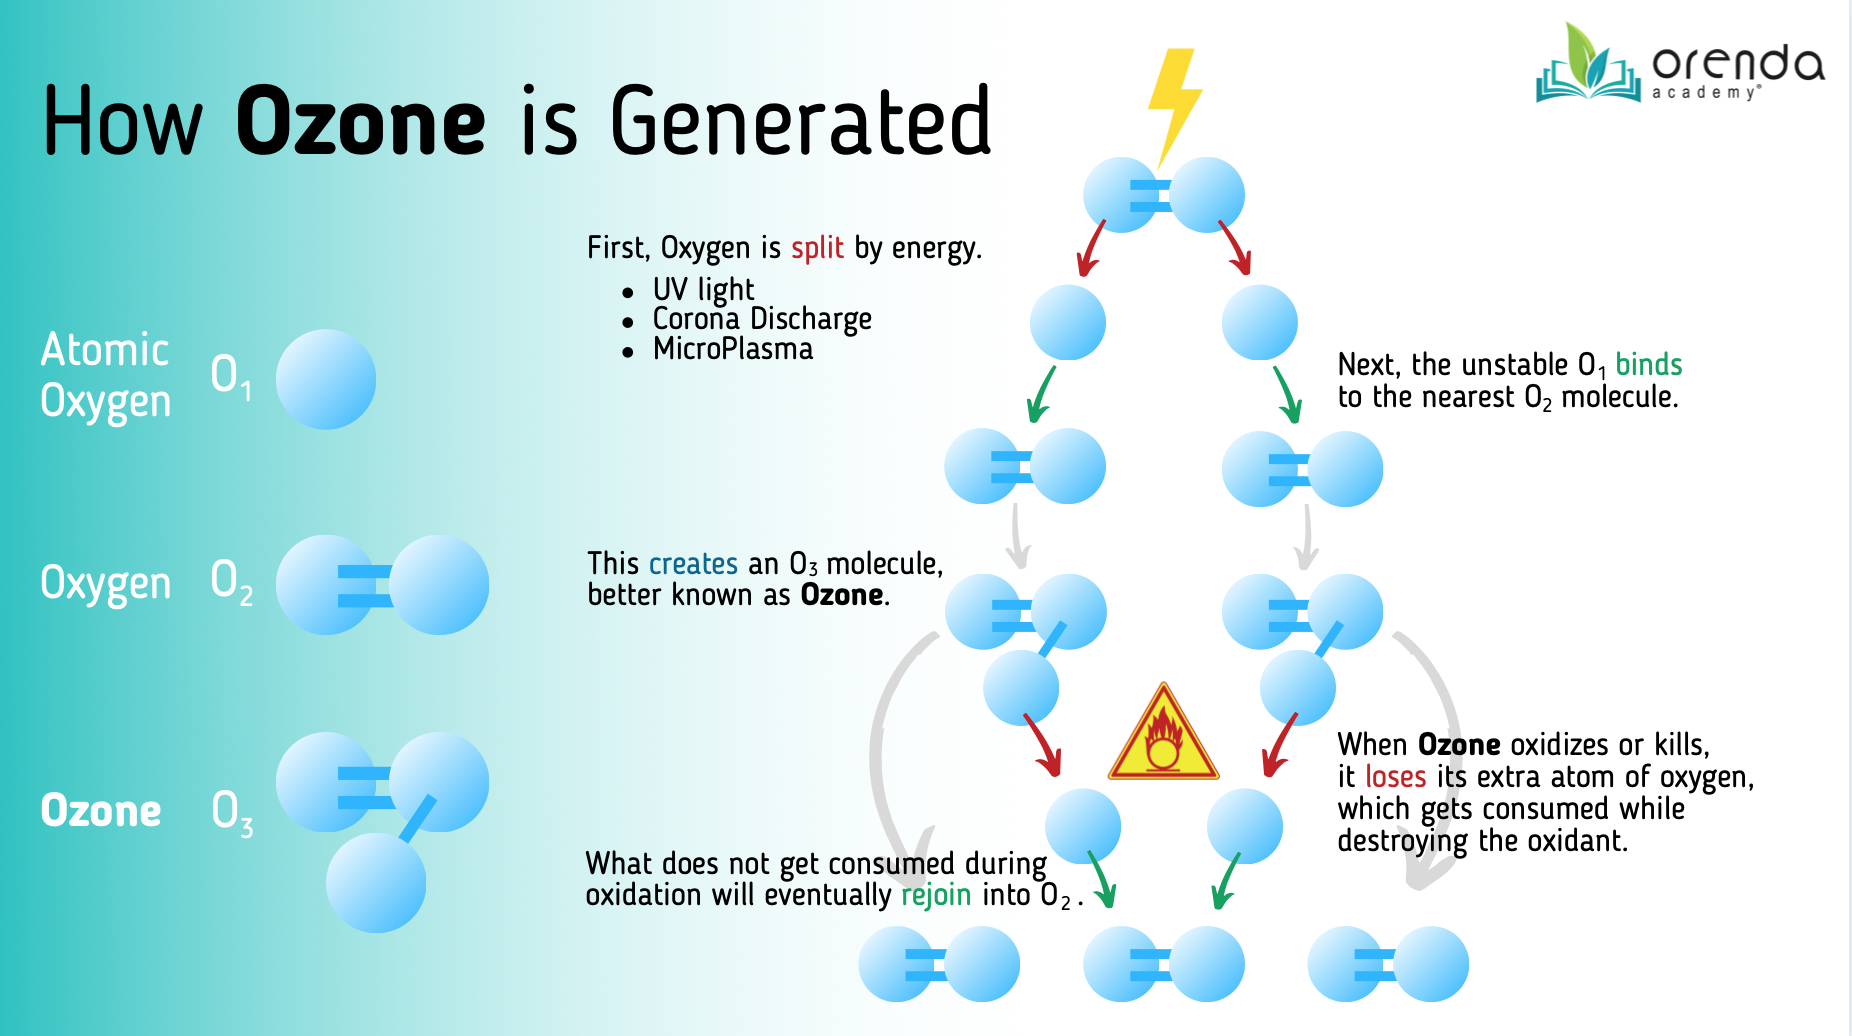 How Ozone is Generated, O3 generator, ozone, how ozone is made, pool secondary disinfectant,